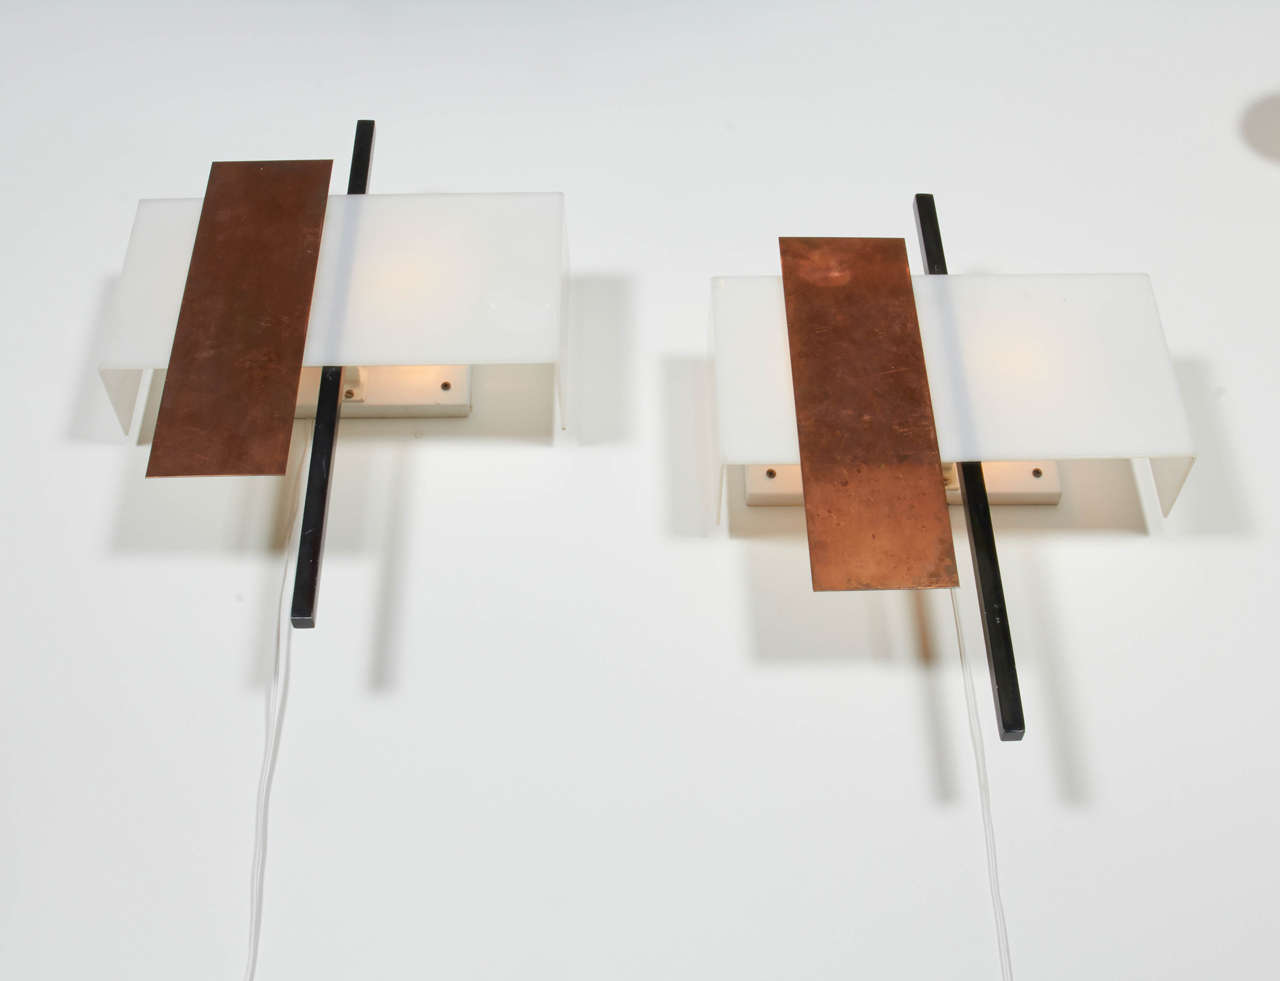 Pair of Copper and Perspex Sconces by BAG Turgi, Switzerland, 1960s In Excellent Condition For Sale In New York, NY